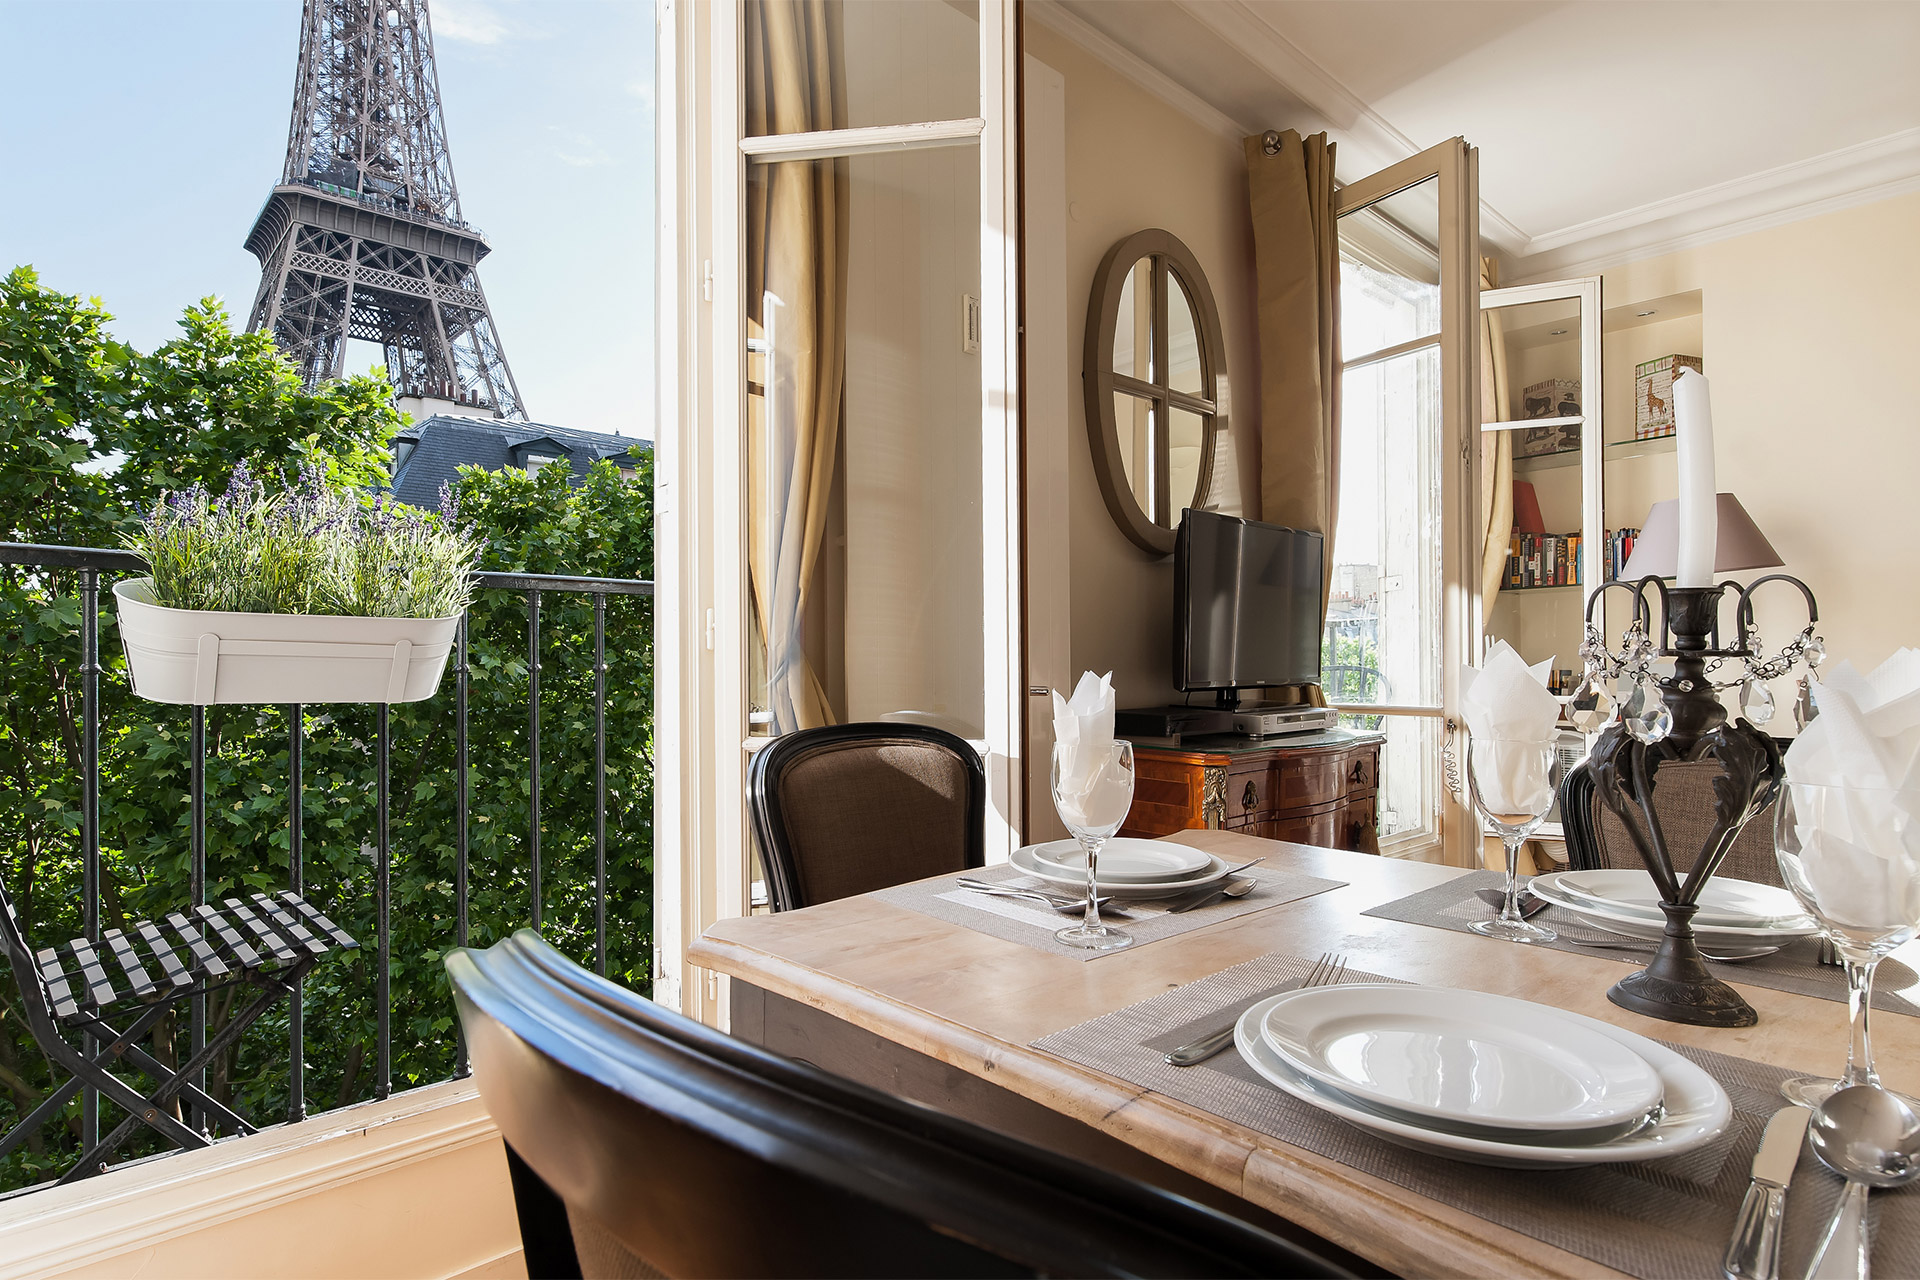 Eiffel Tower view from the dining table in the Bergerac vacation rental offered by Paris Perfect